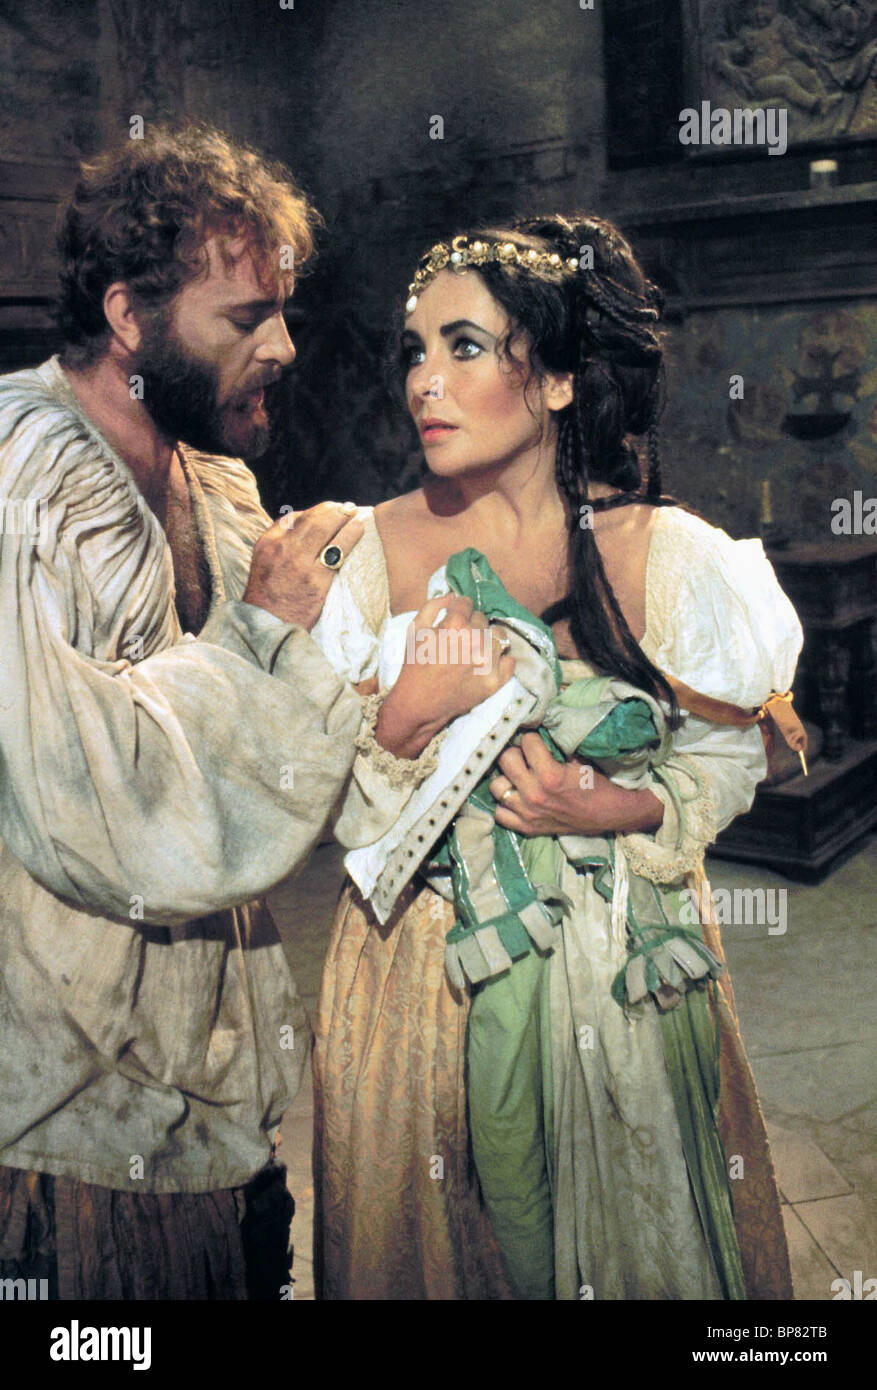 taming of the shrew couples The most famous version of the taming of the shrew is the 1967 franco zeffirelli film starring real life celebrity couple elizabeth taylor and richard burton as kate and petruchio (apparently the.